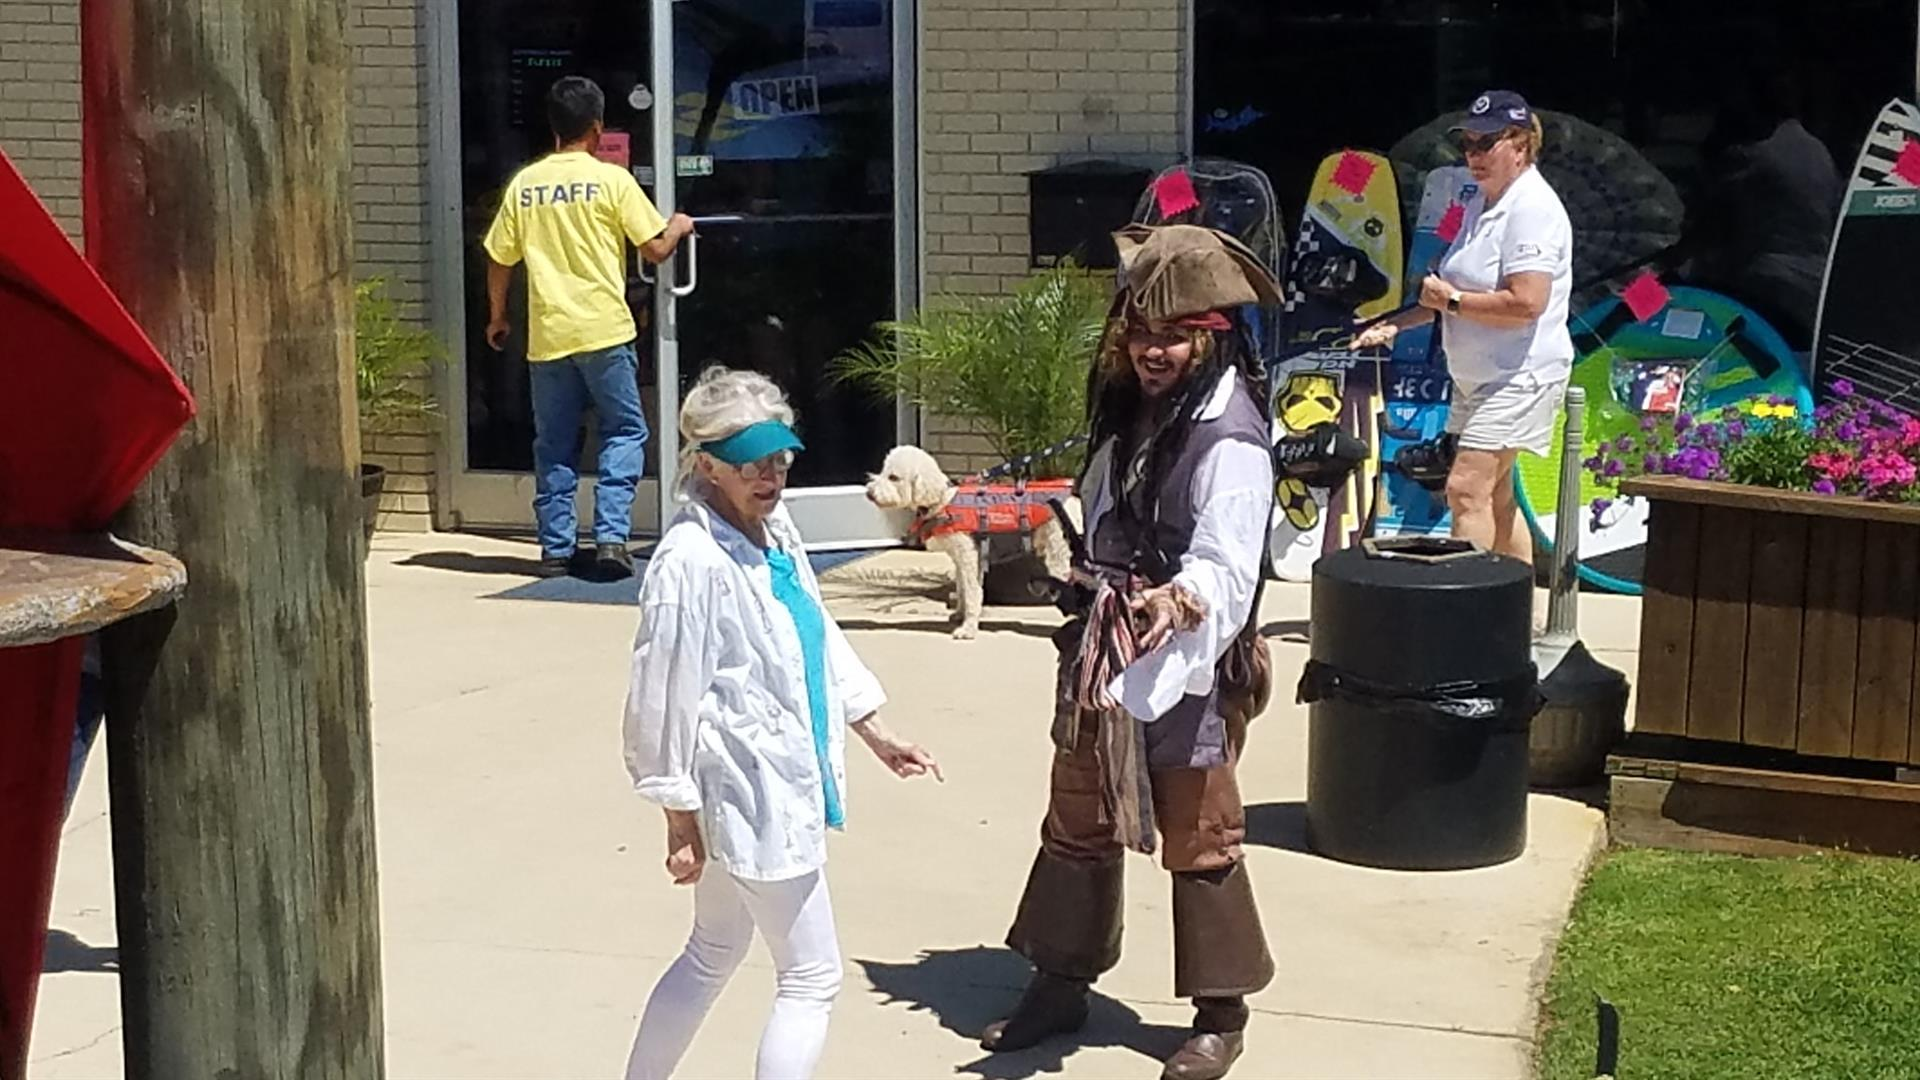 Man in a pirate costume and an older woman walking